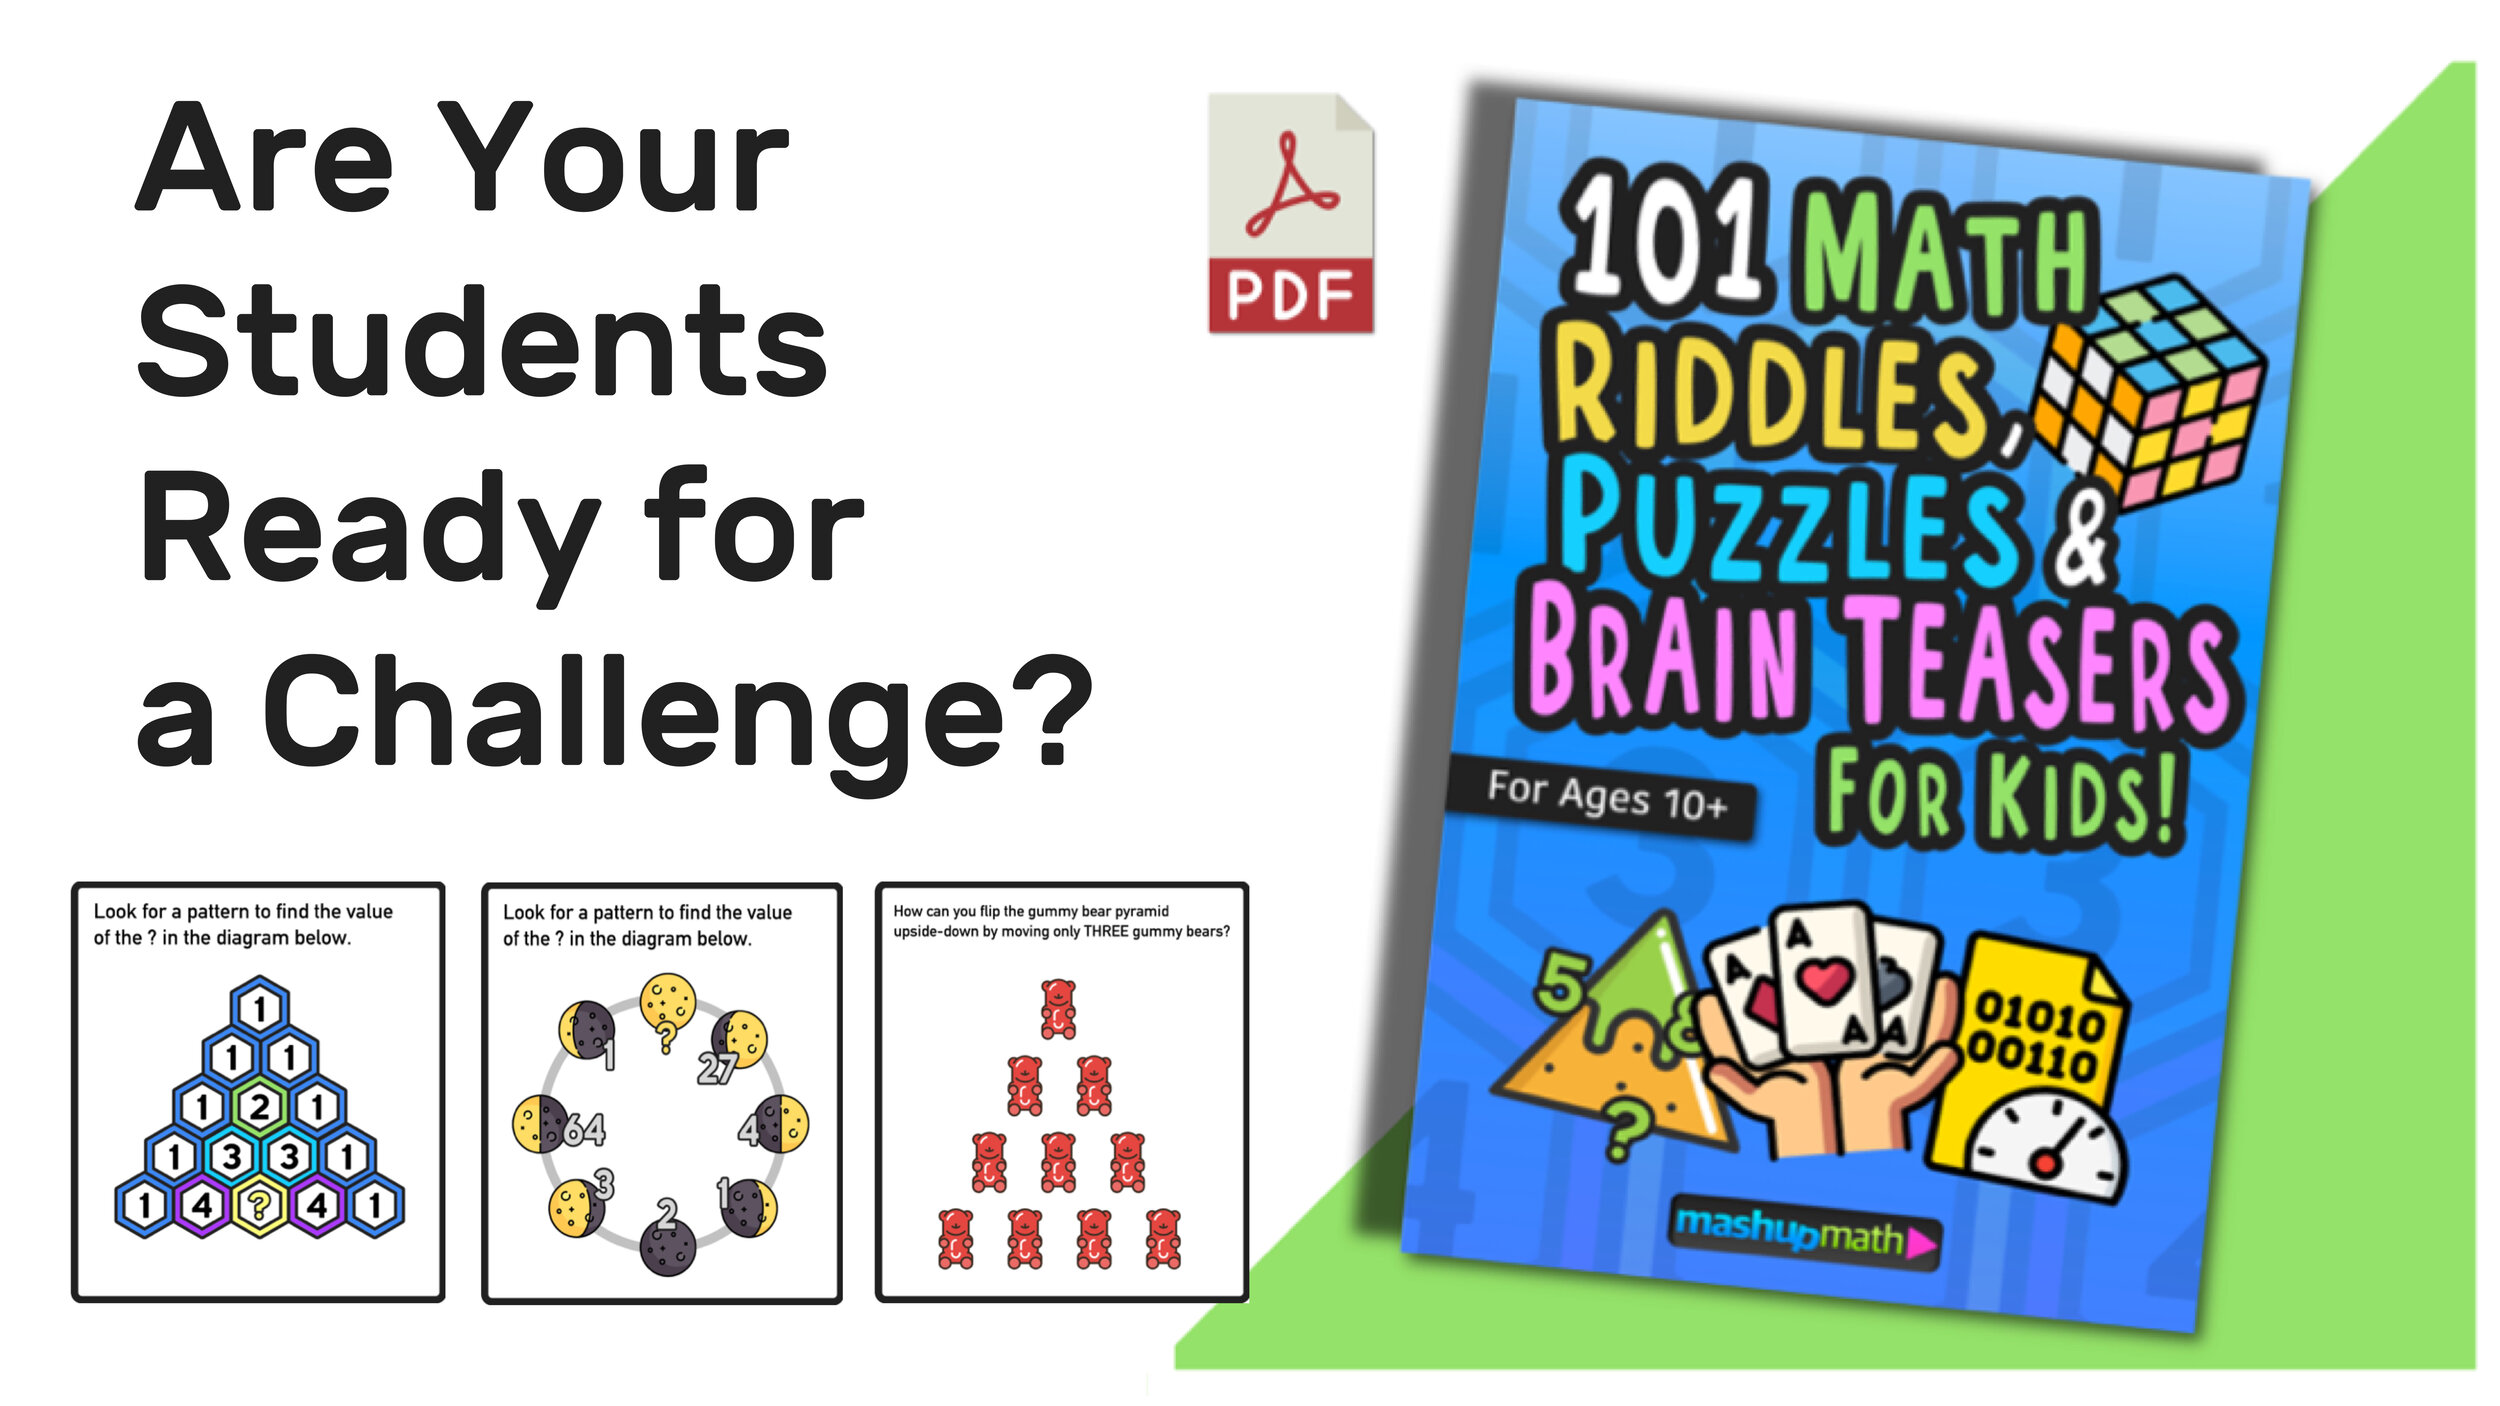 10 Super Fun Math Riddles For Kids Ages 10 With Answers Mashup Math